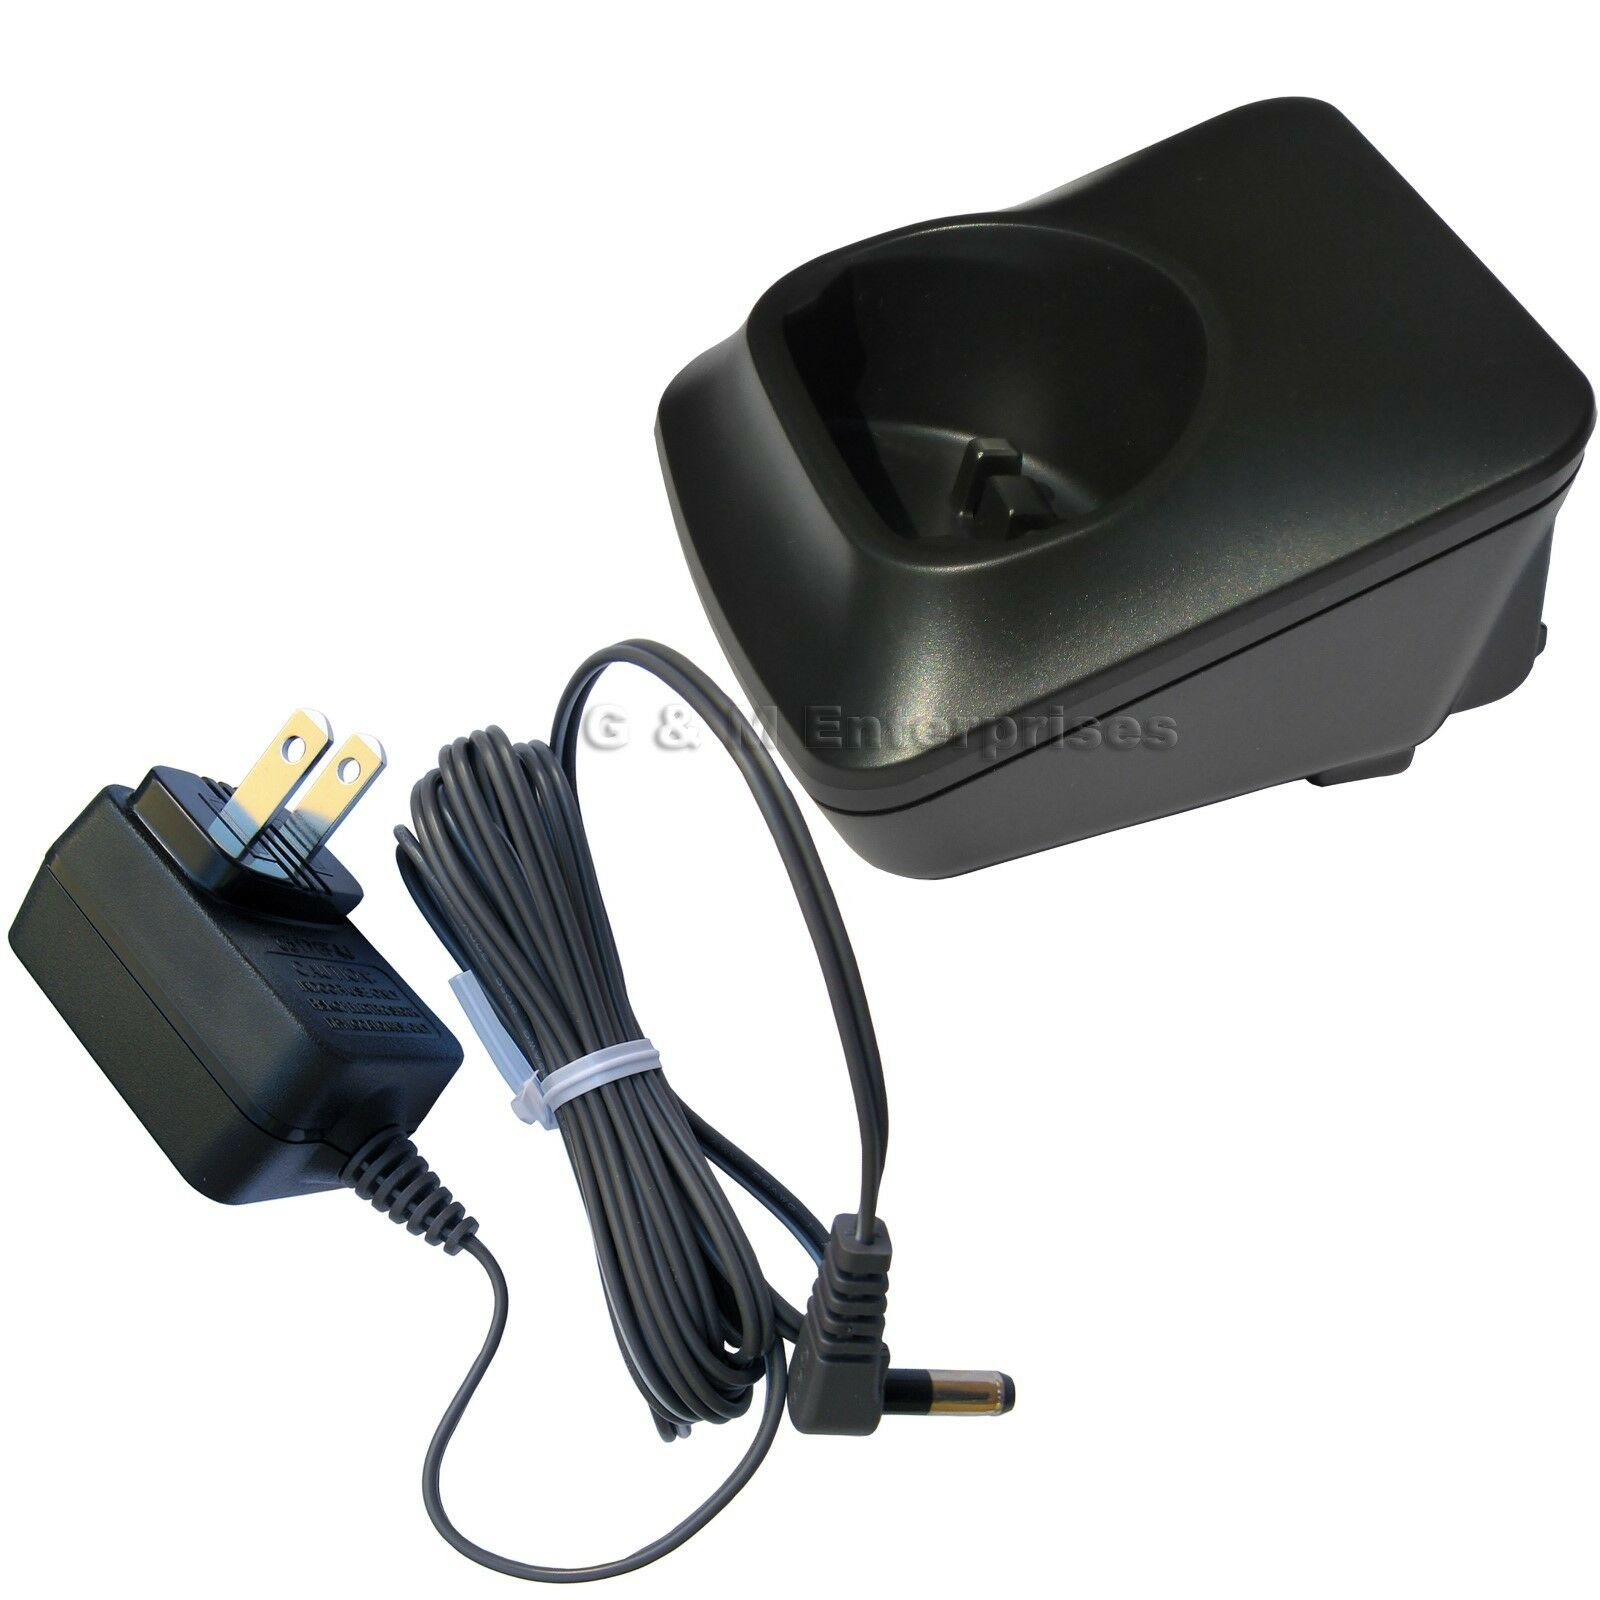 Panasonic Pnlc1029zm Charge Stand + Pnlv226z Ac Adapter F...